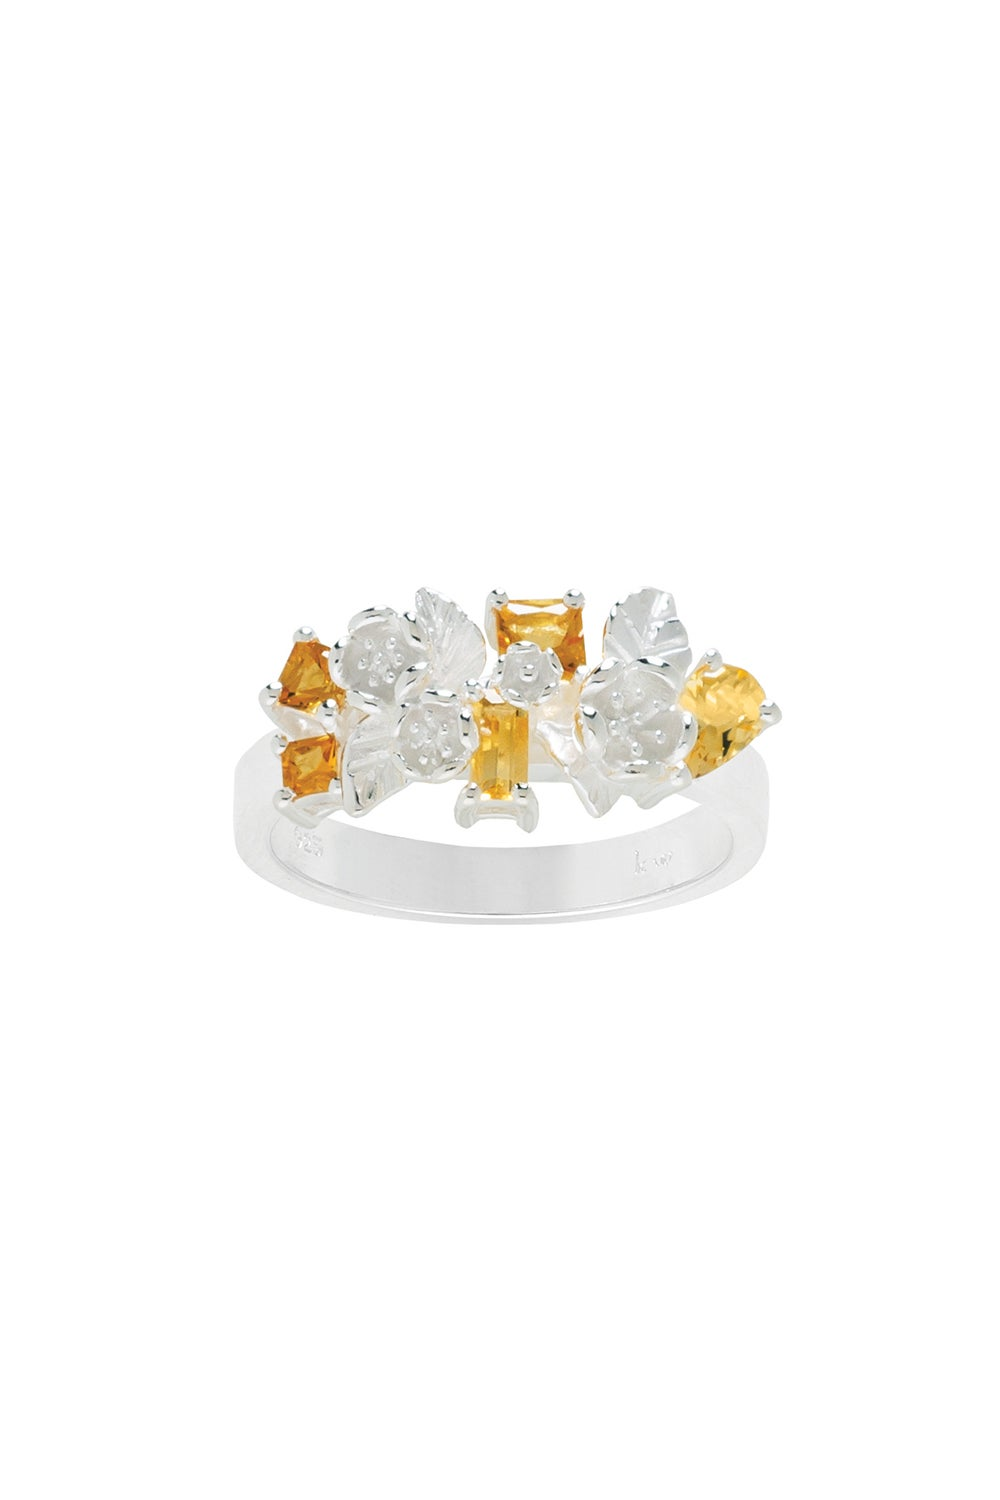 Rock Garden Flowers Ring Silver & Citrine